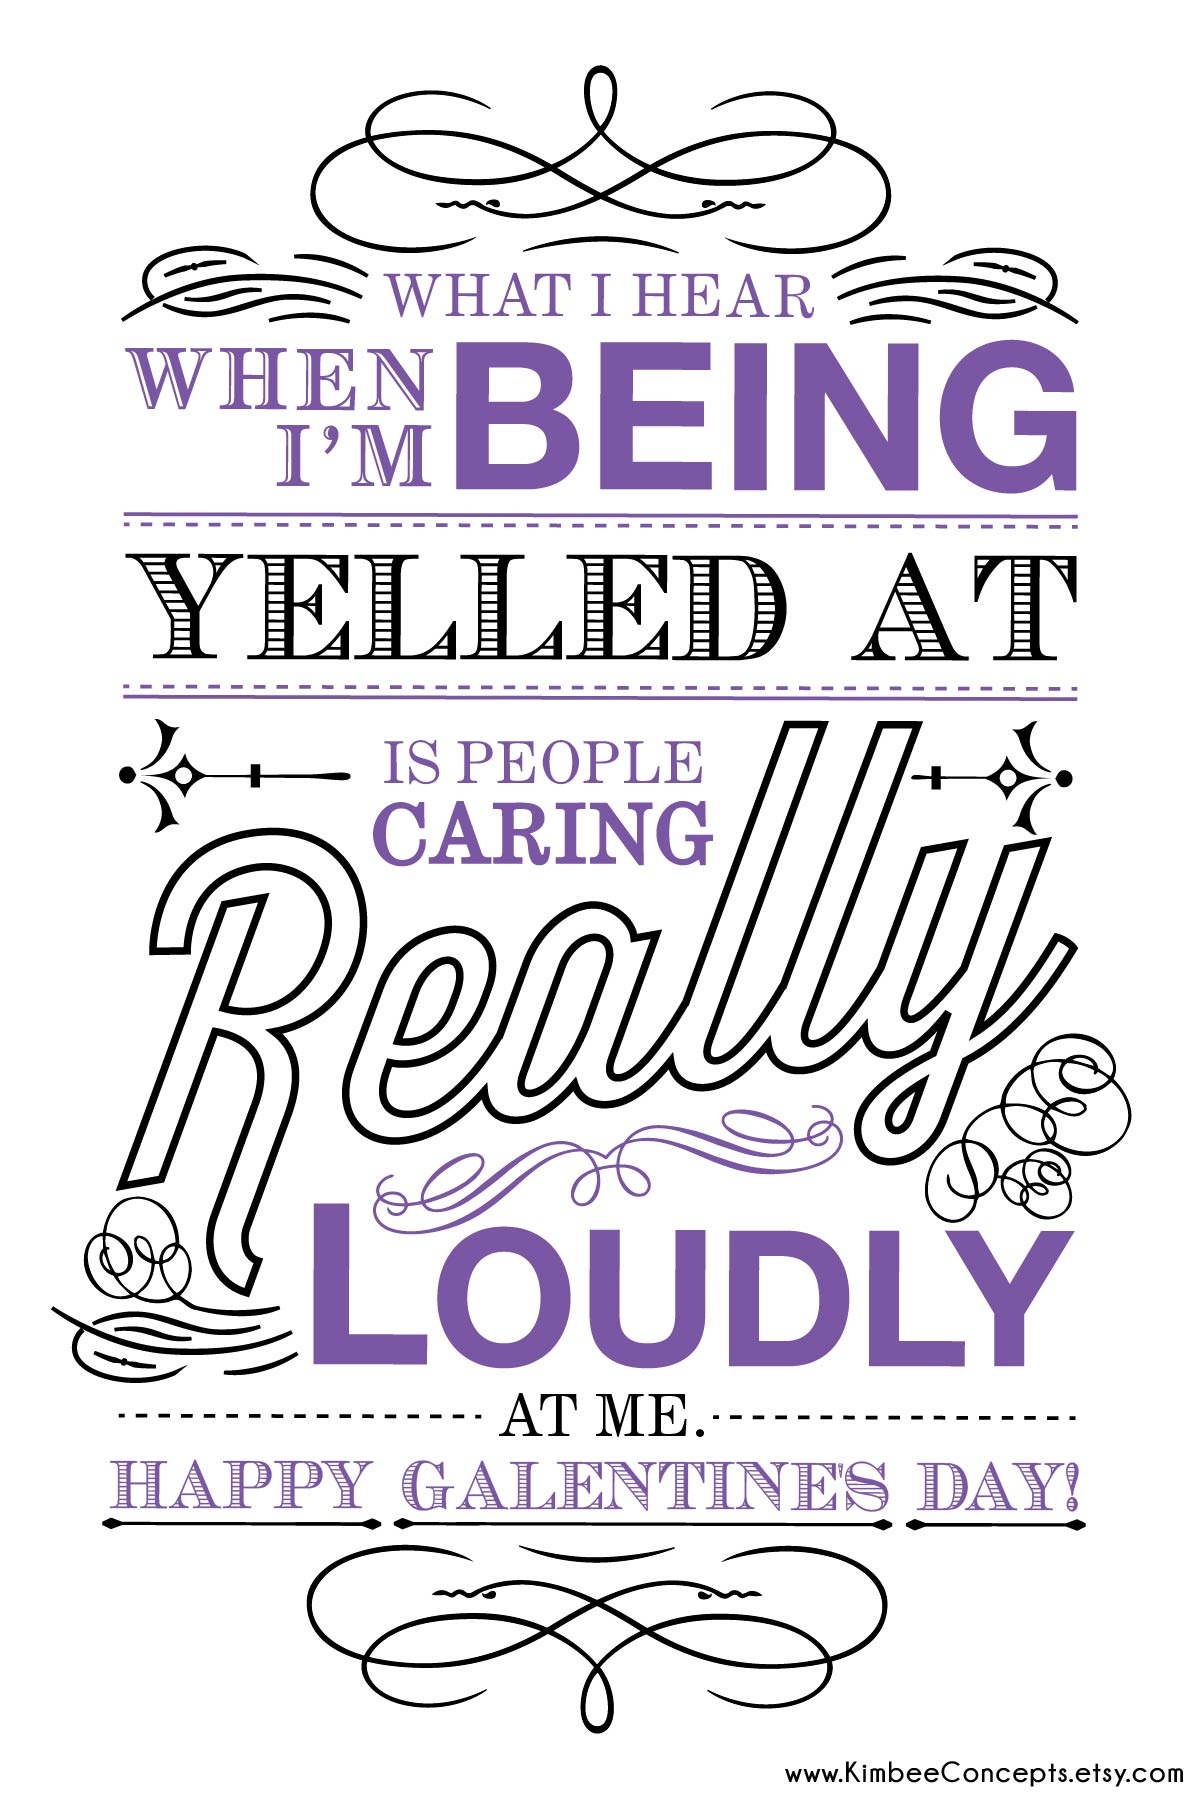 Free Galentines Day Card Caring Loudly